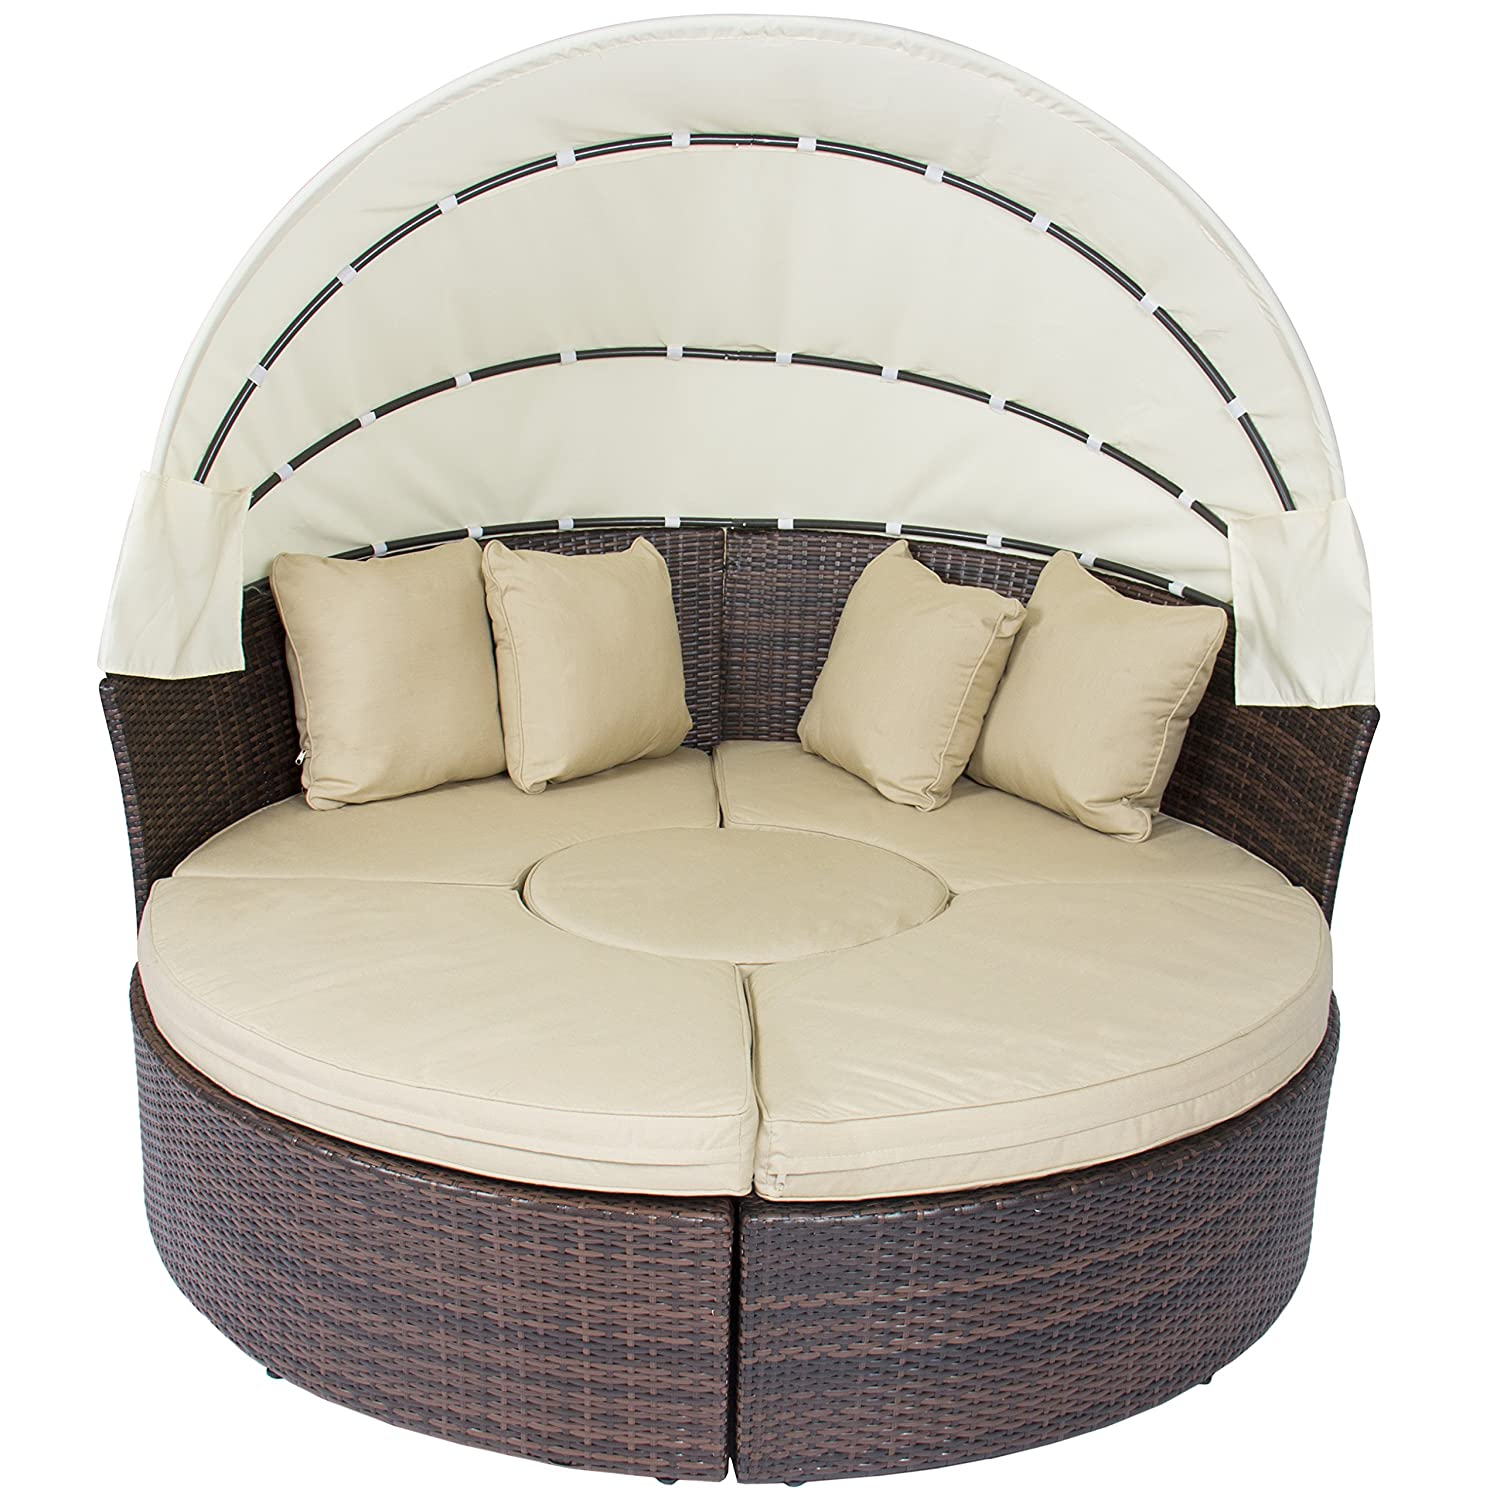 Amazon.com  Outdoor Patio Sofa Furniture Round Retractable Canopy Daybed Brown Wicker Rattan  Garden u0026 Outdoor  sc 1 st  Amazon.com & Amazon.com : Outdoor Patio Sofa Furniture Round Retractable Canopy ...